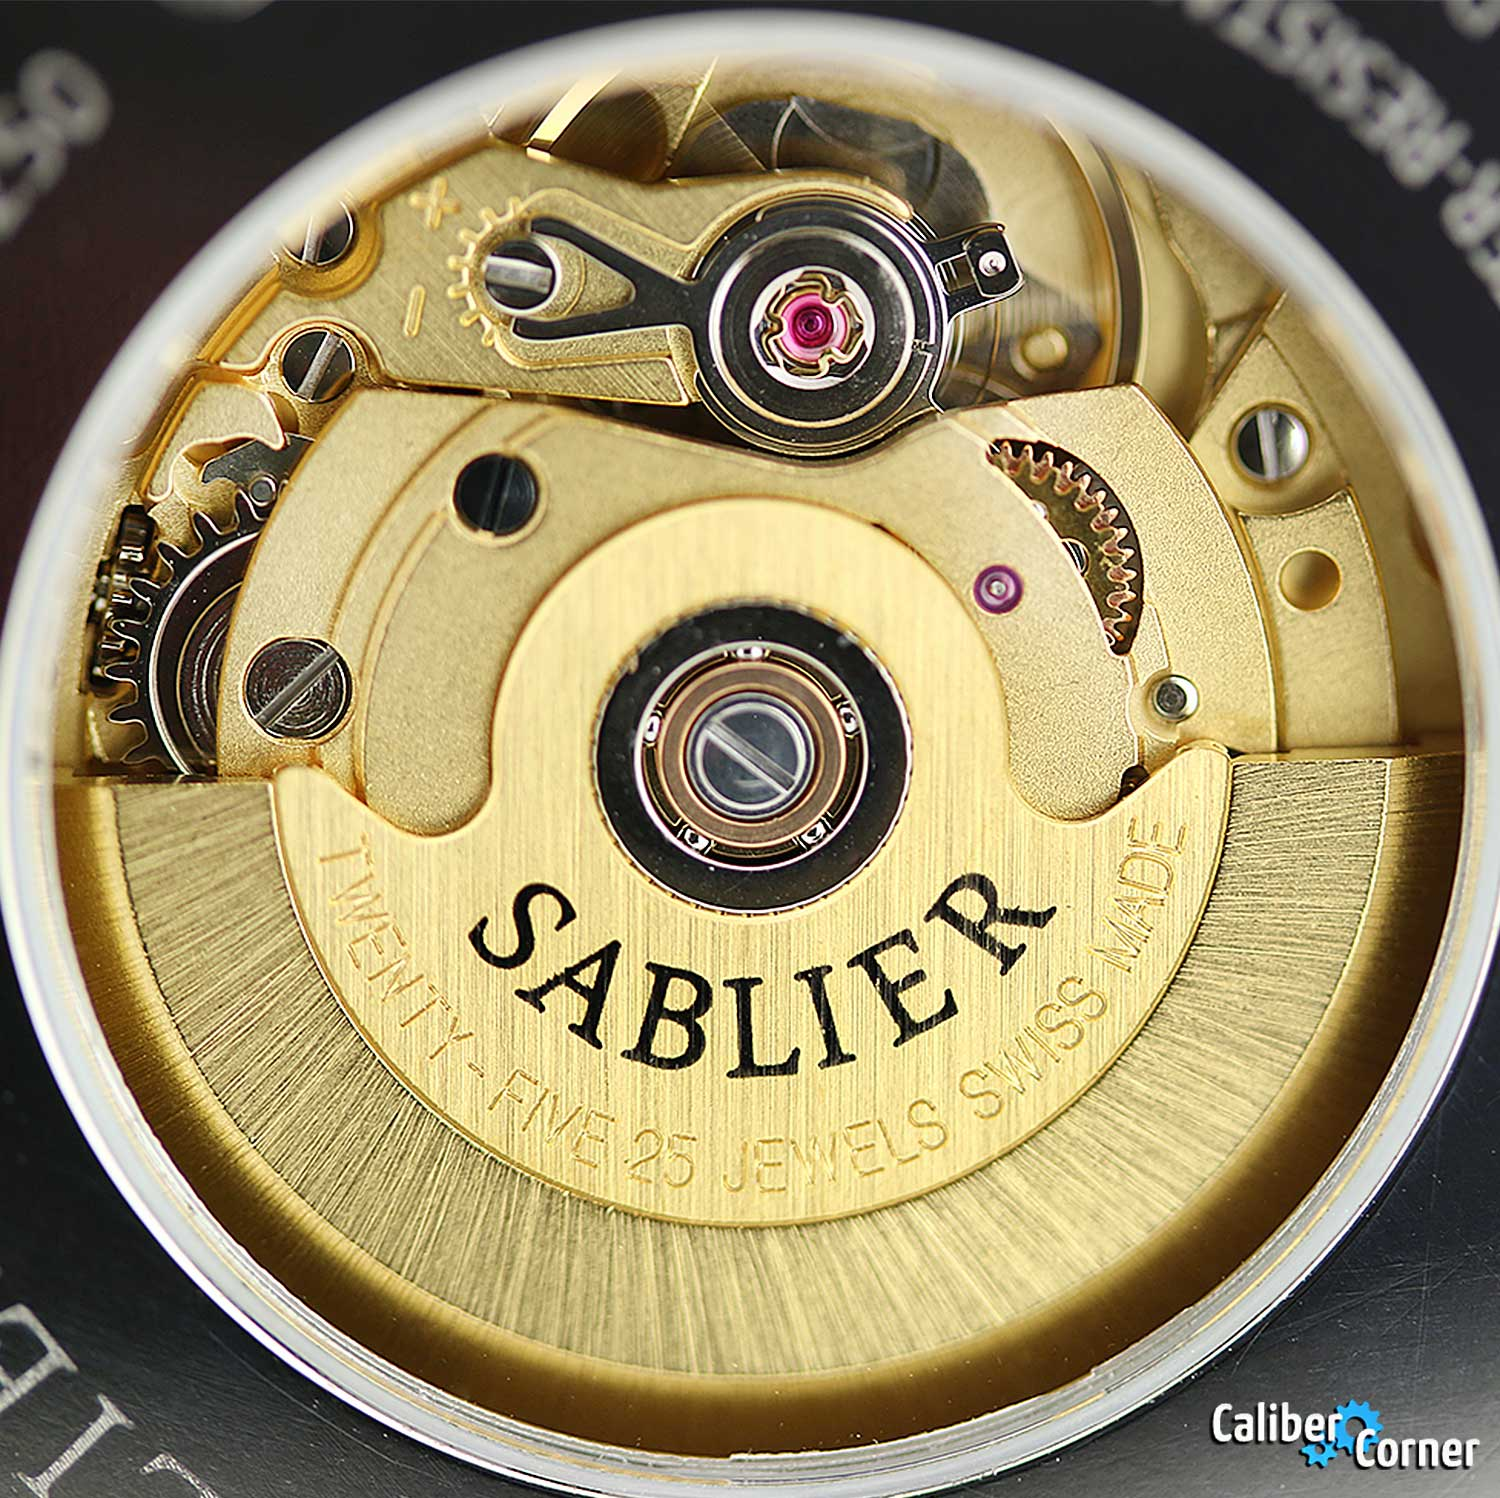 ETA 2824-2 from Sablier with brass finish